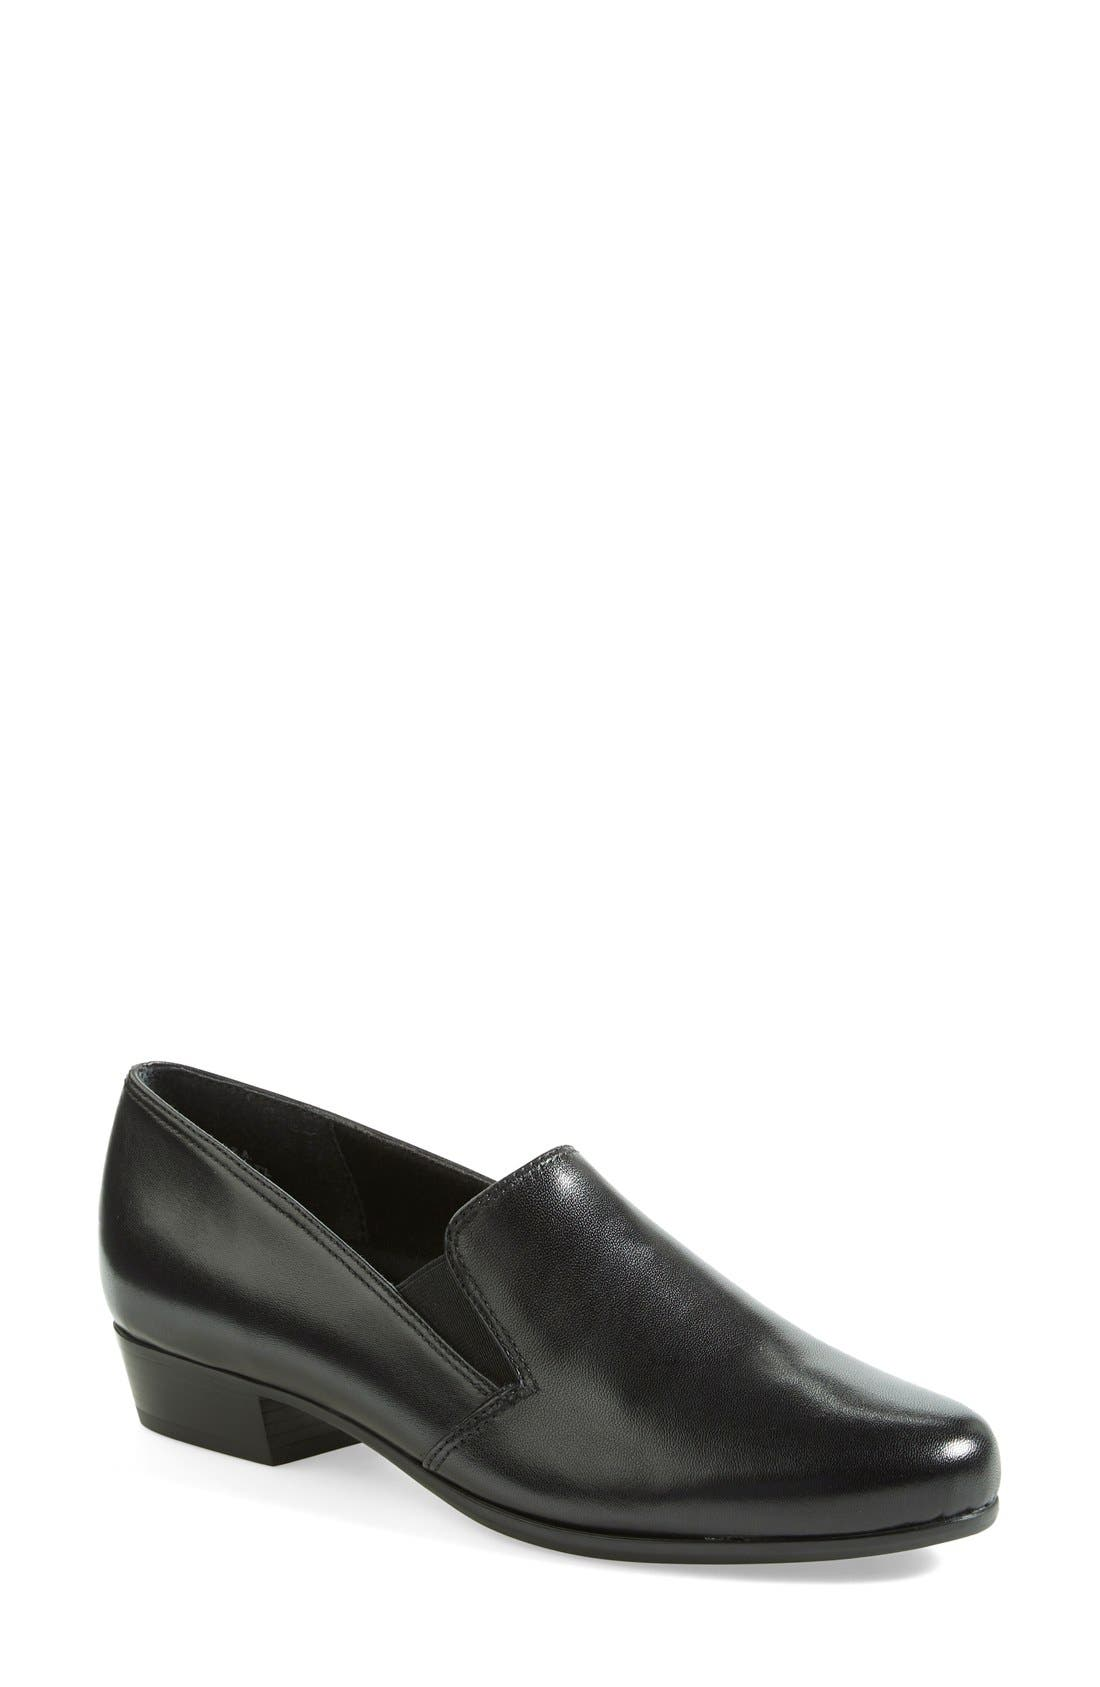 'Hailey' Leather Loafer,                             Main thumbnail 1, color,                             001